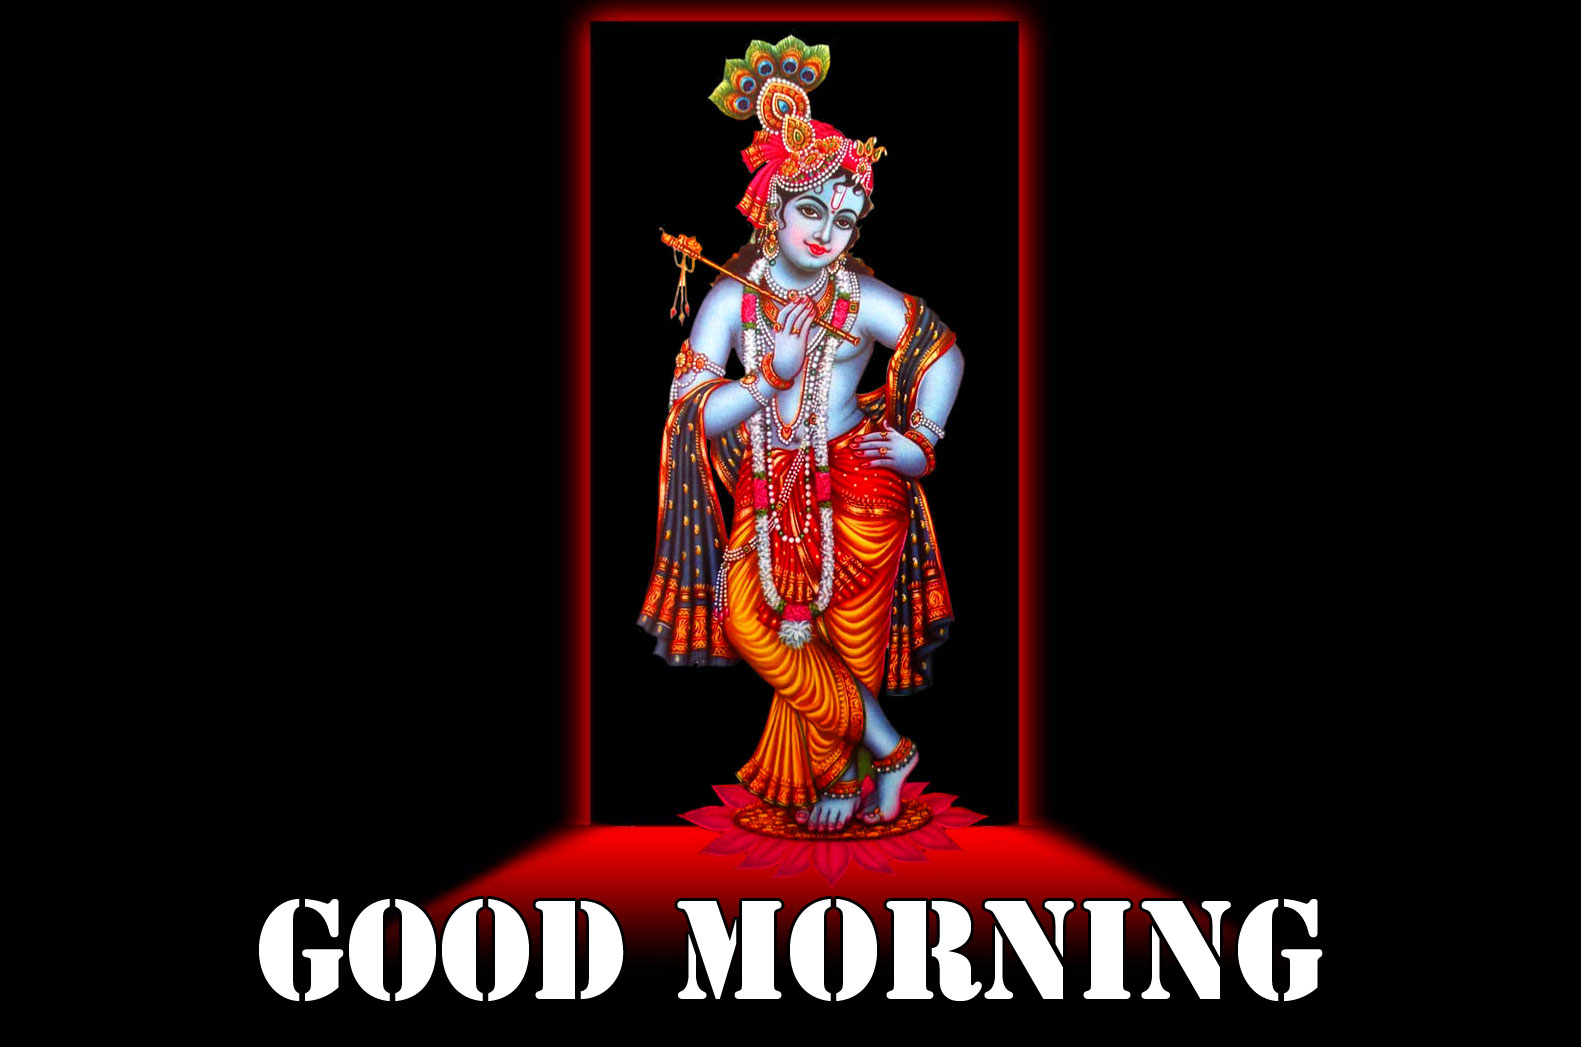 Krishna Good Morning Wishes Images Download